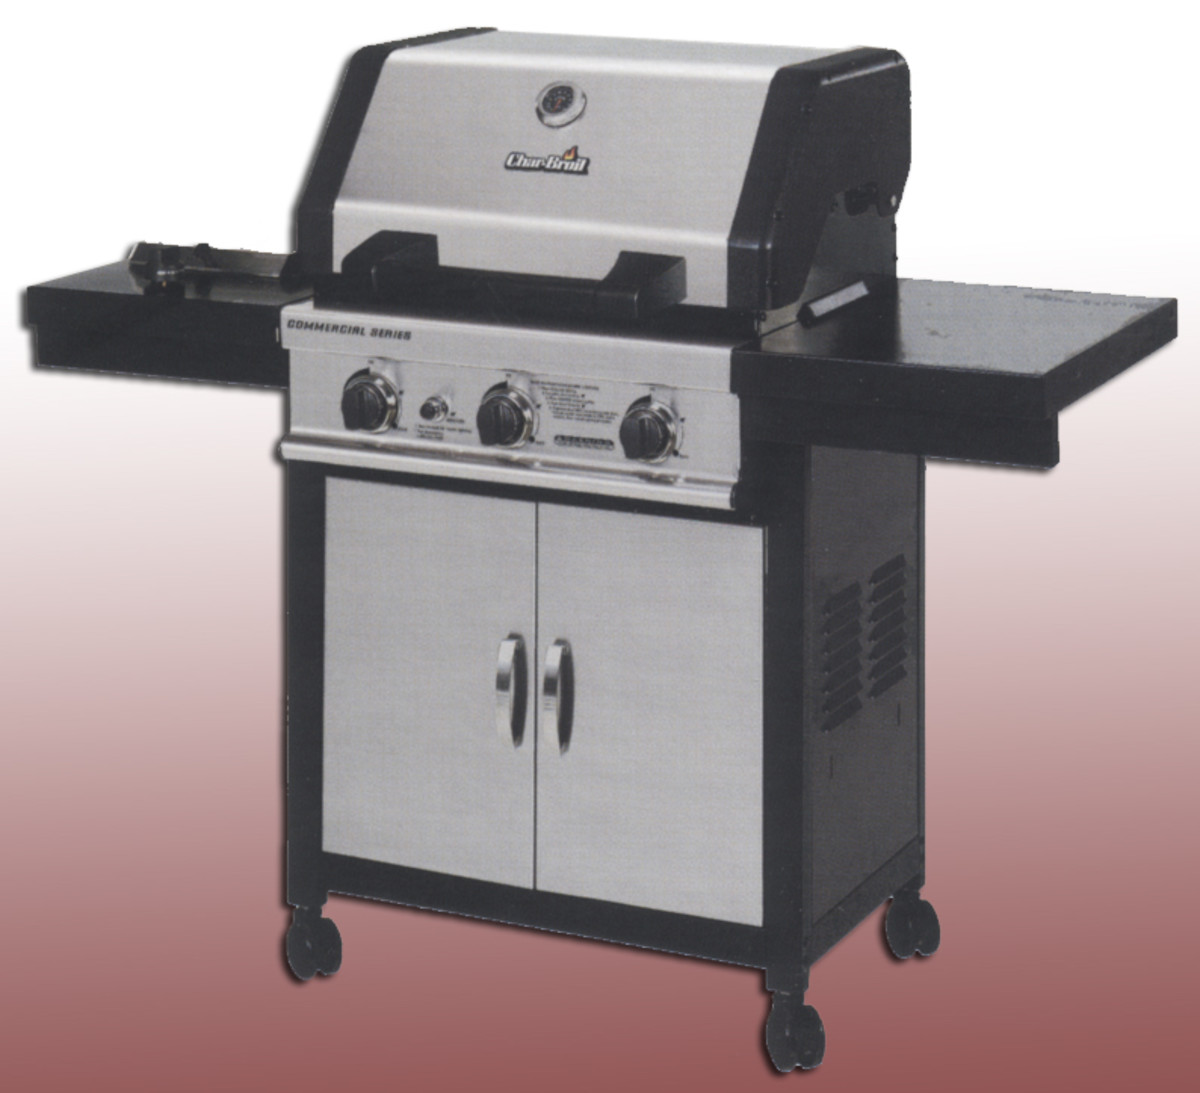 Charbroil commercial series 4632215 with 45,000 BTU, 3 cast burners, side burner, electronic ignition, 99 year warranty and over 800 sq. in. of barbecuing space.  Not bad for a couple hundred dollars.